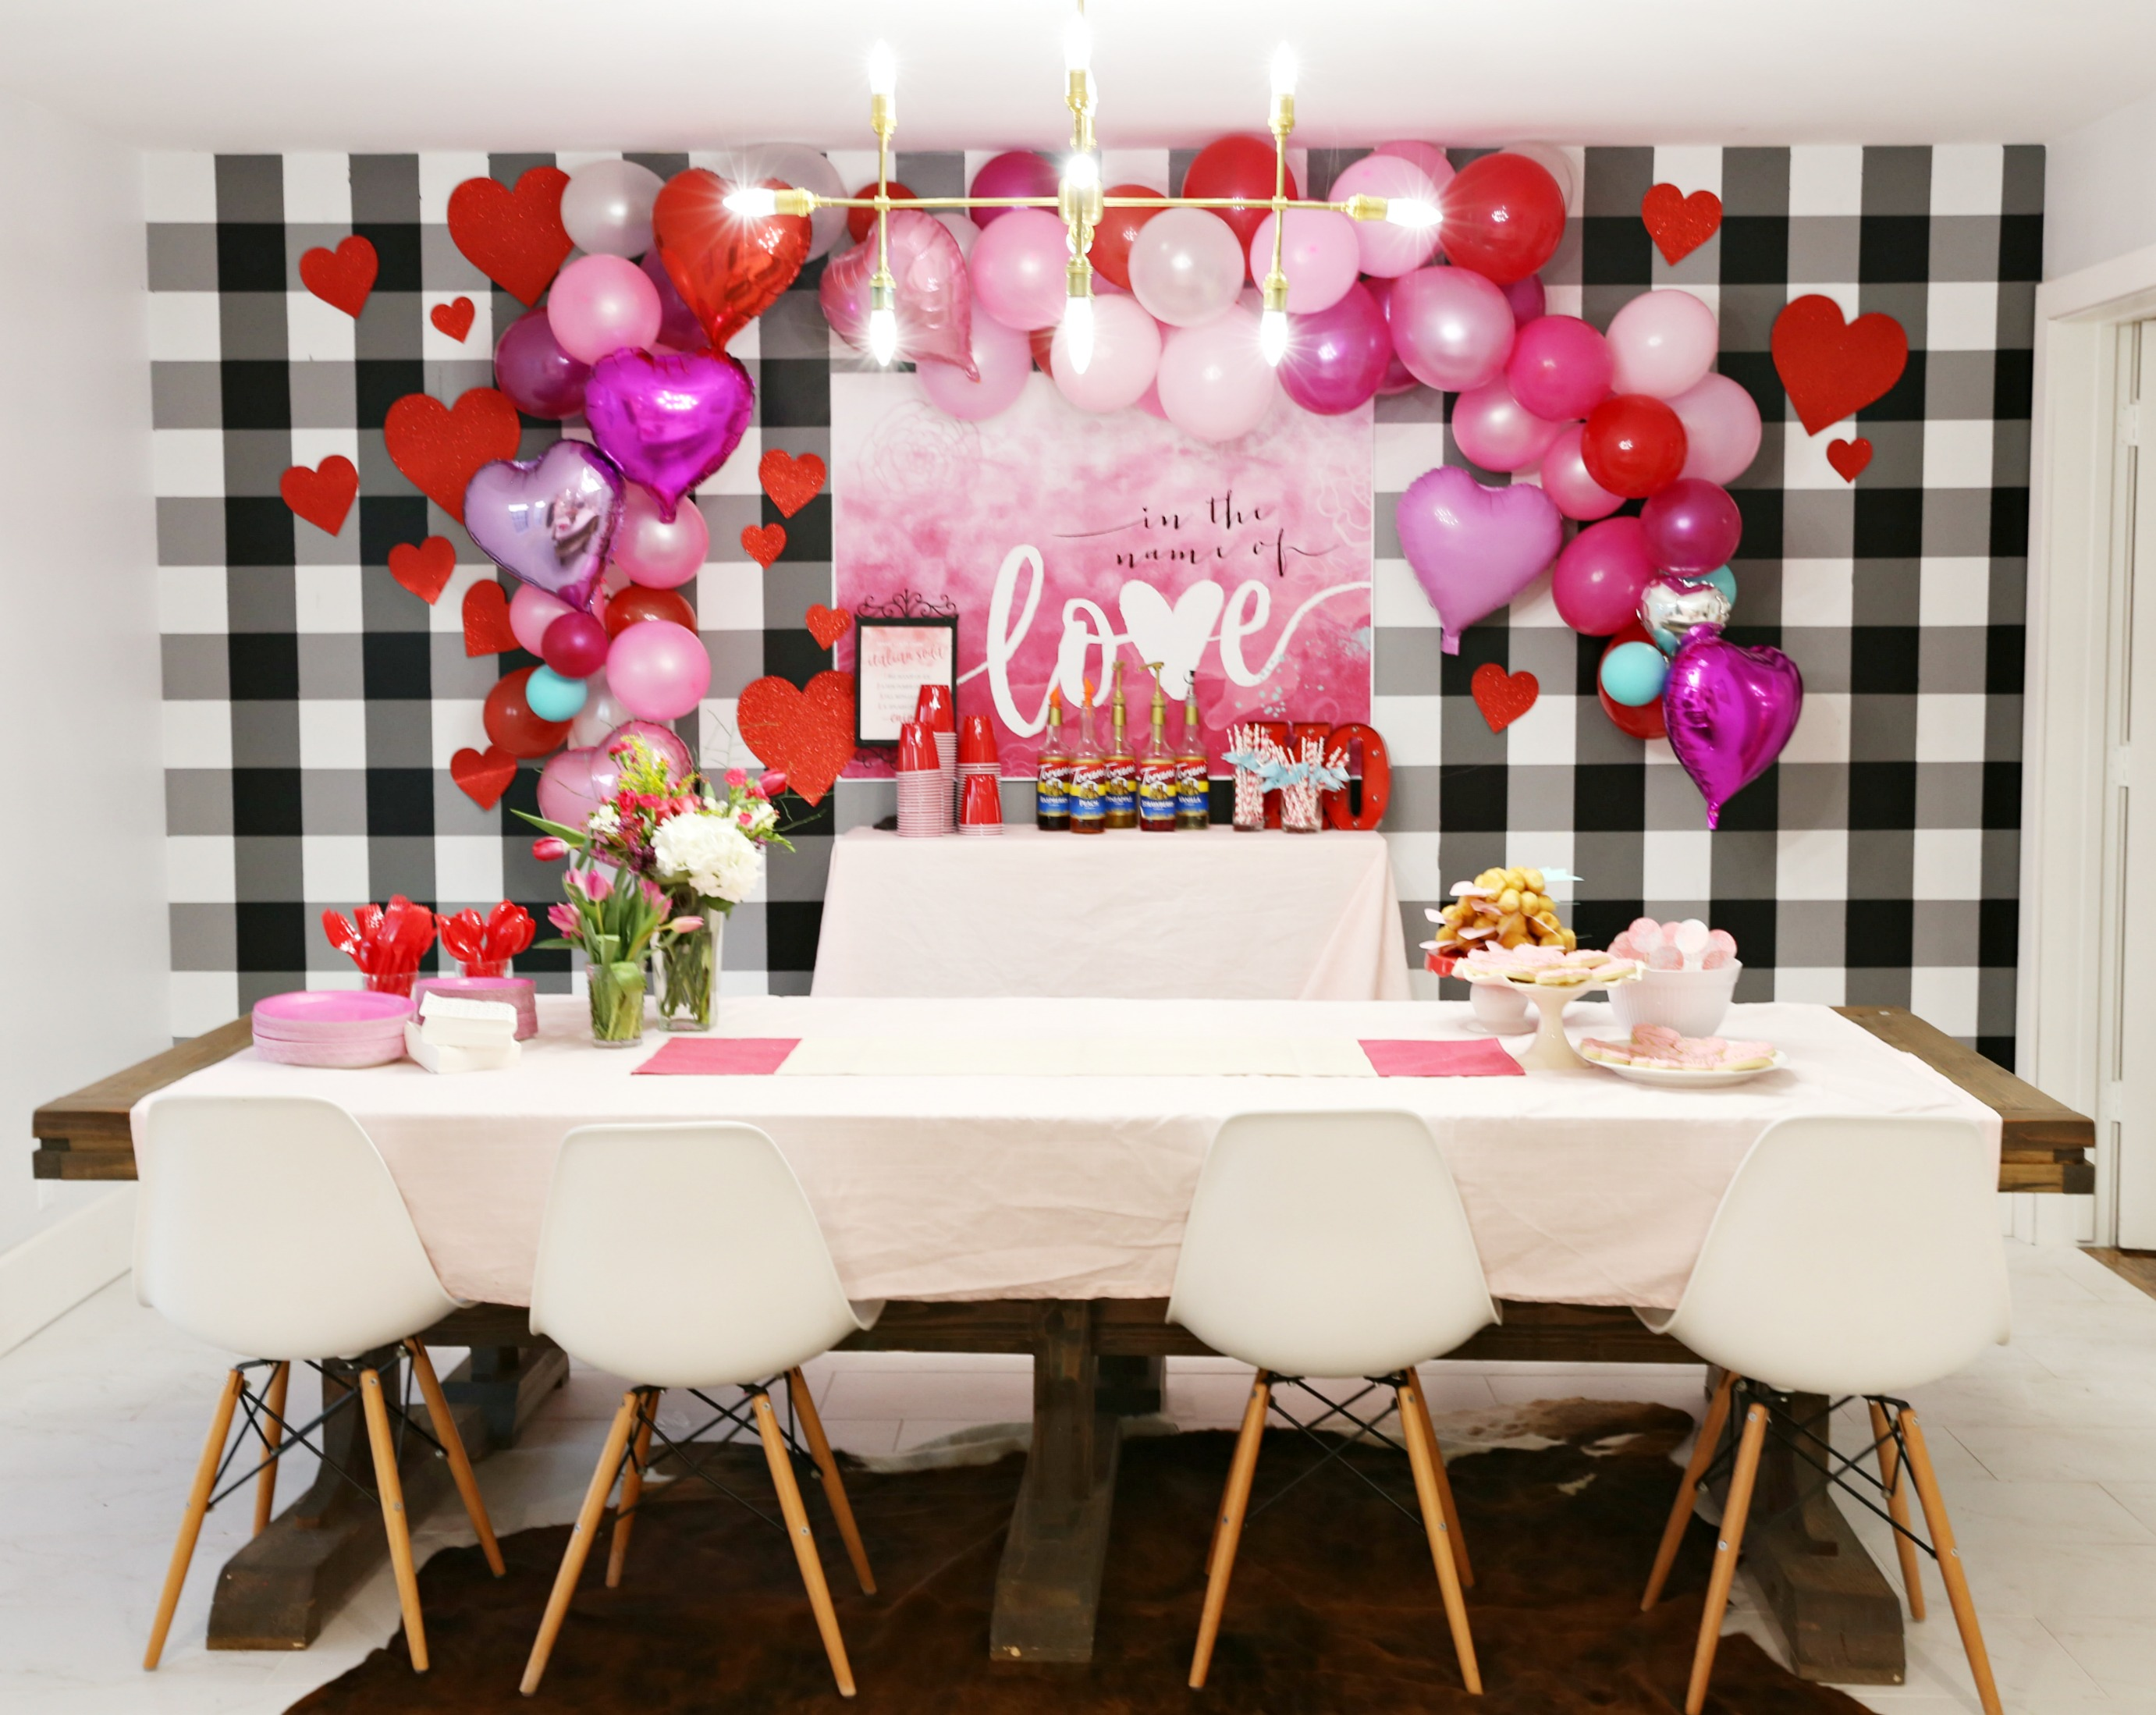 valentines day decor party ideas classy clutter - Valentines Day Decor